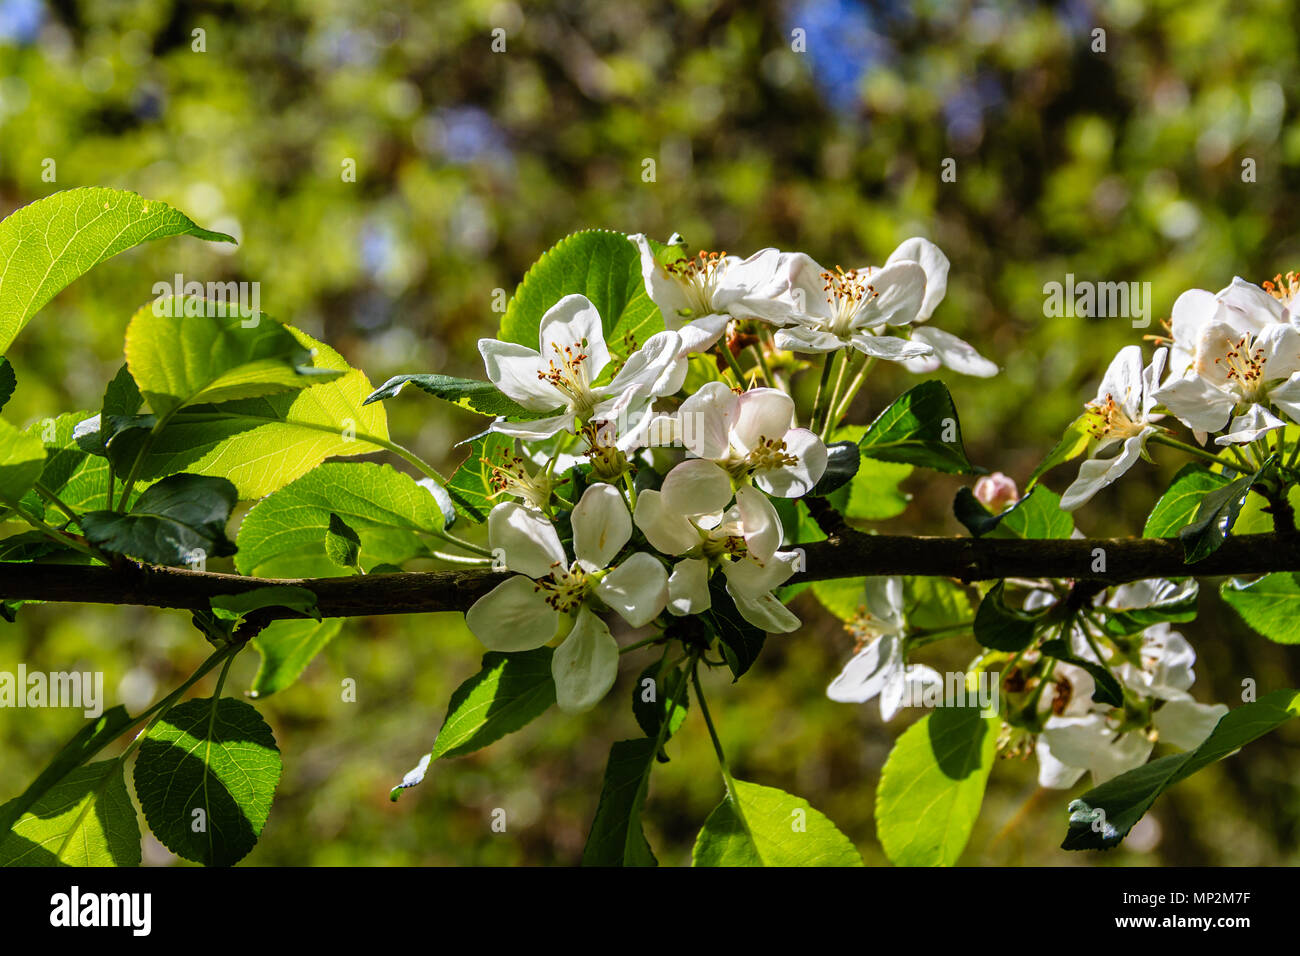 White blossom on a fruit tree, in a spring garden in Rothbury, Northumberland, UK. May 2018. - Stock Image